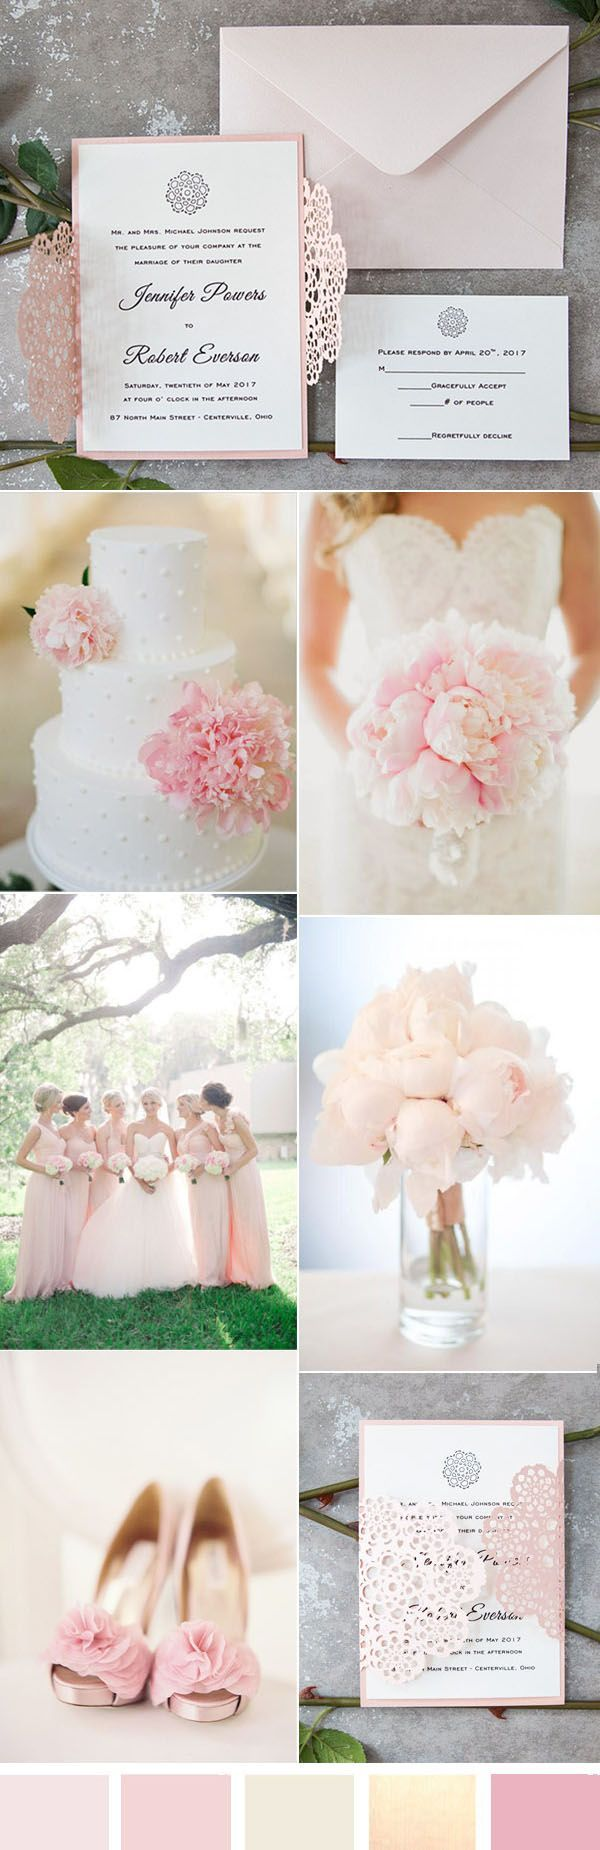 elegant and romantic soft pink wedding ideas and invitations | Pink ...